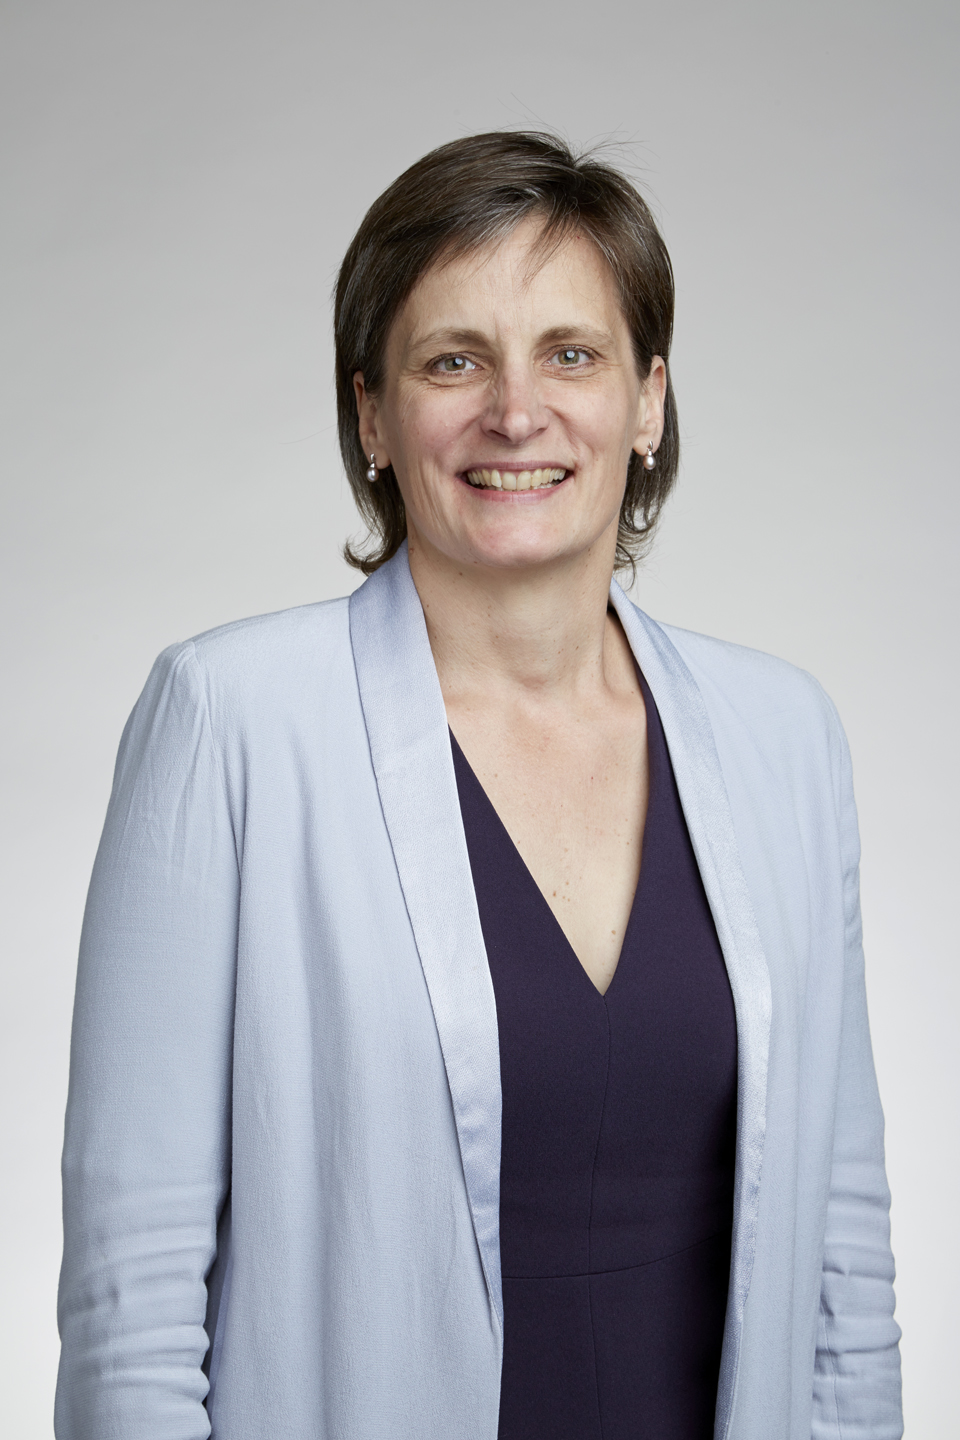 Corinne Le Quéré at the [[Royal Society]] admissions day in London for [[List of Fellows of the Royal Society elected in 2016|new fellows in 2016]]